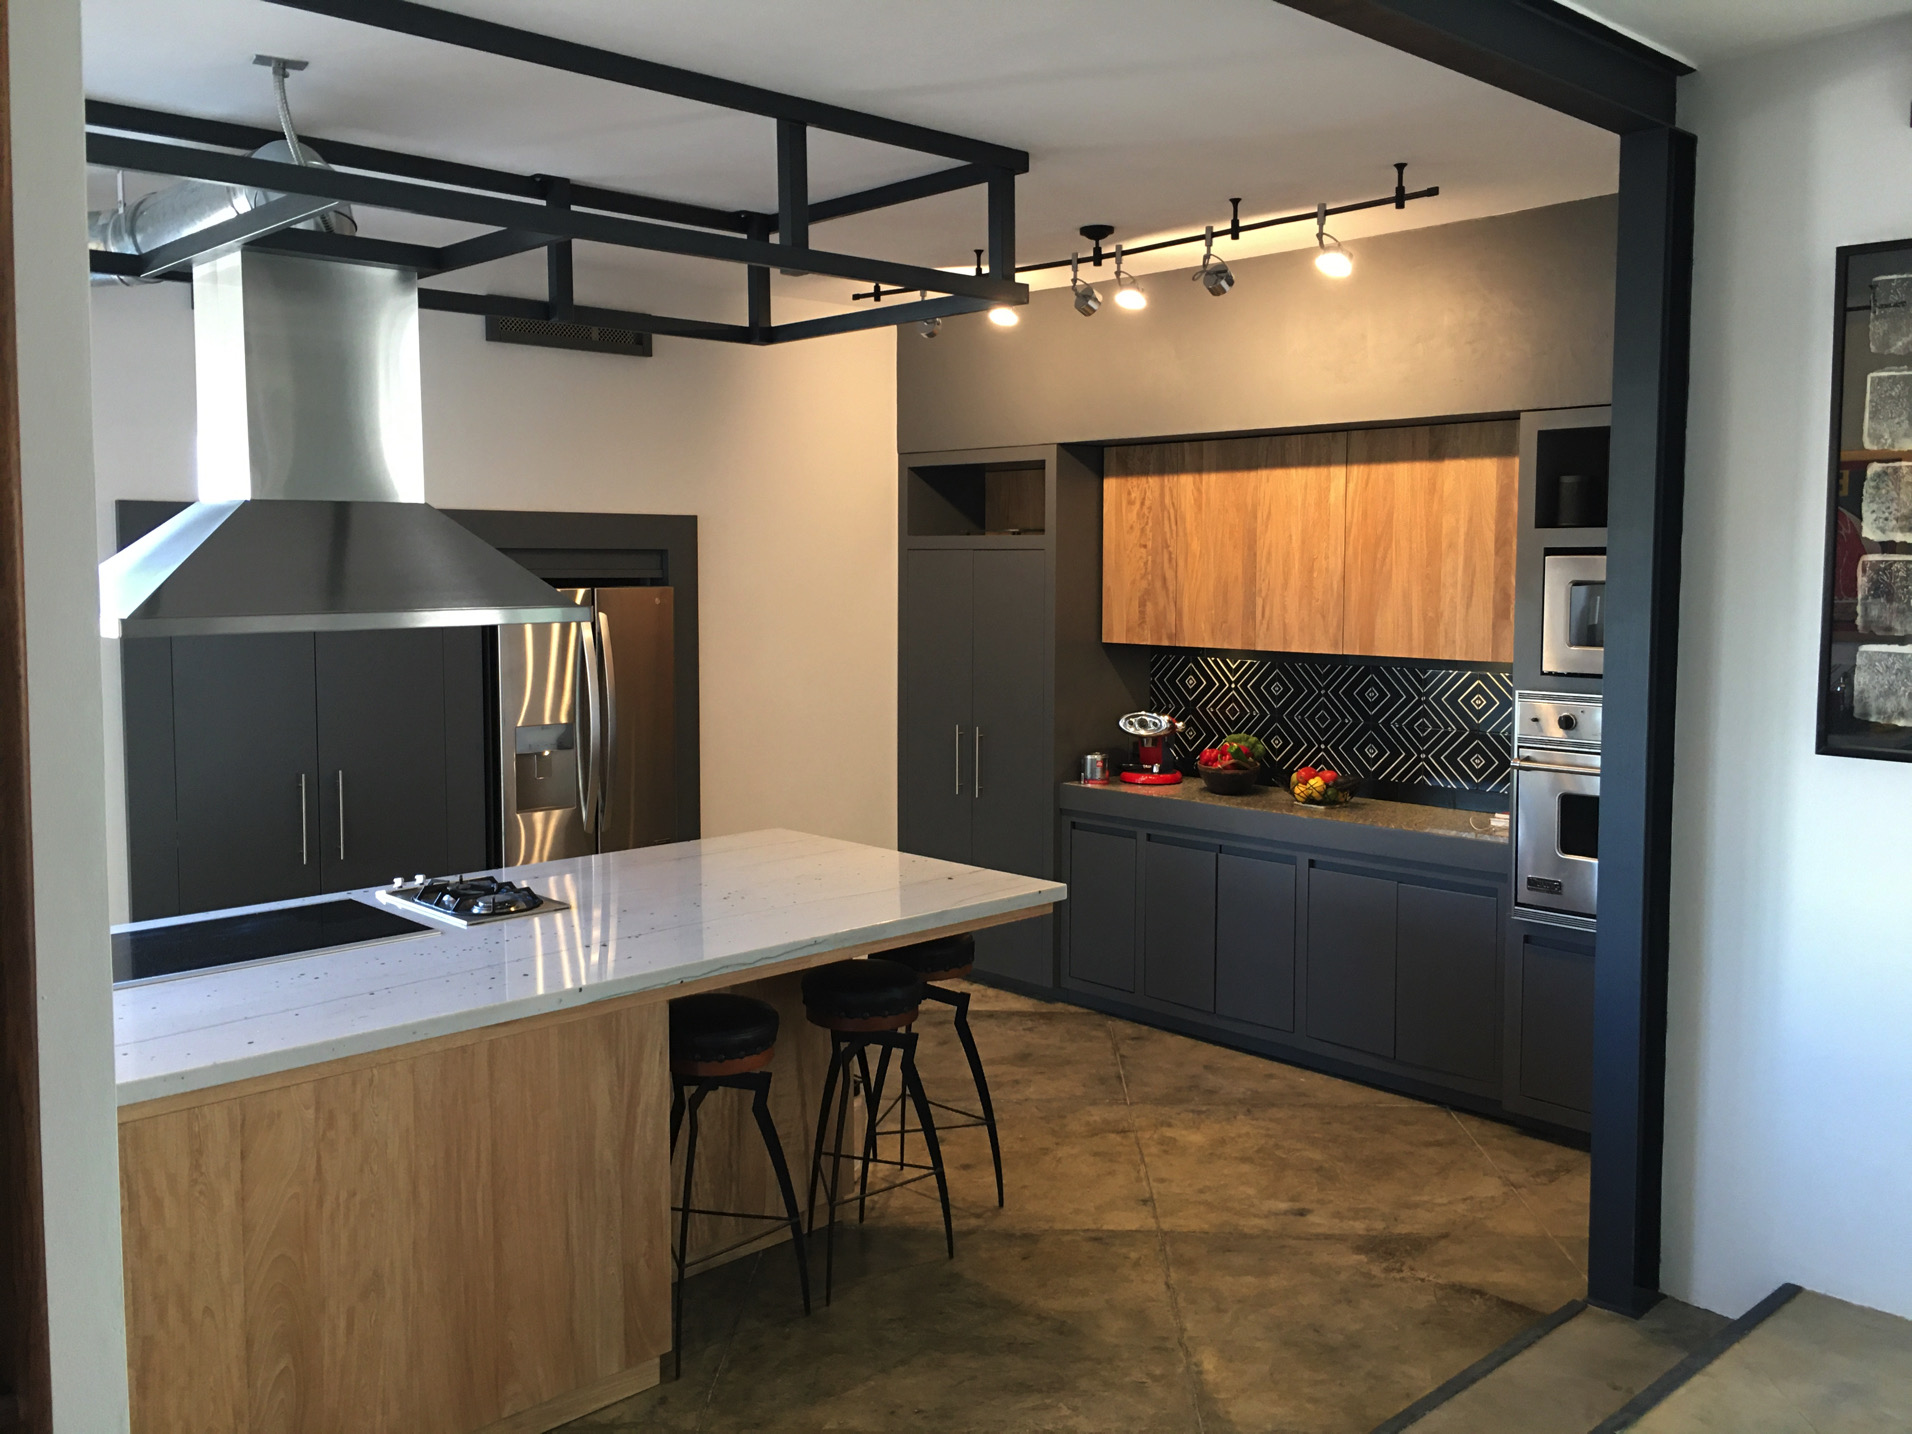 Finisterra-kitchen-3-wb